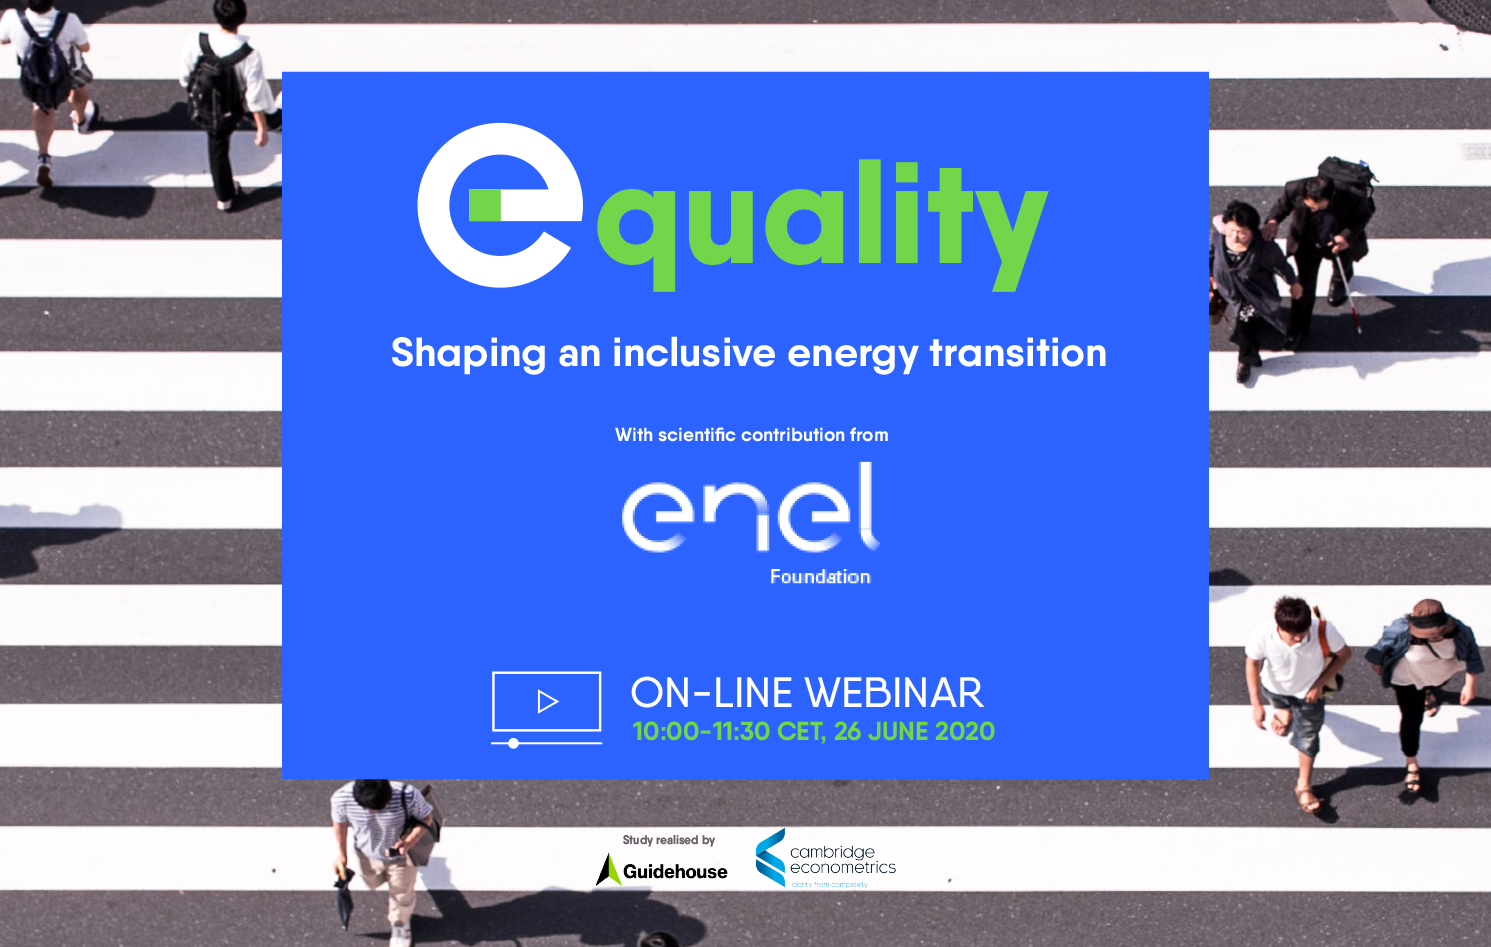 E-quality: shaping an inclusive energy transition